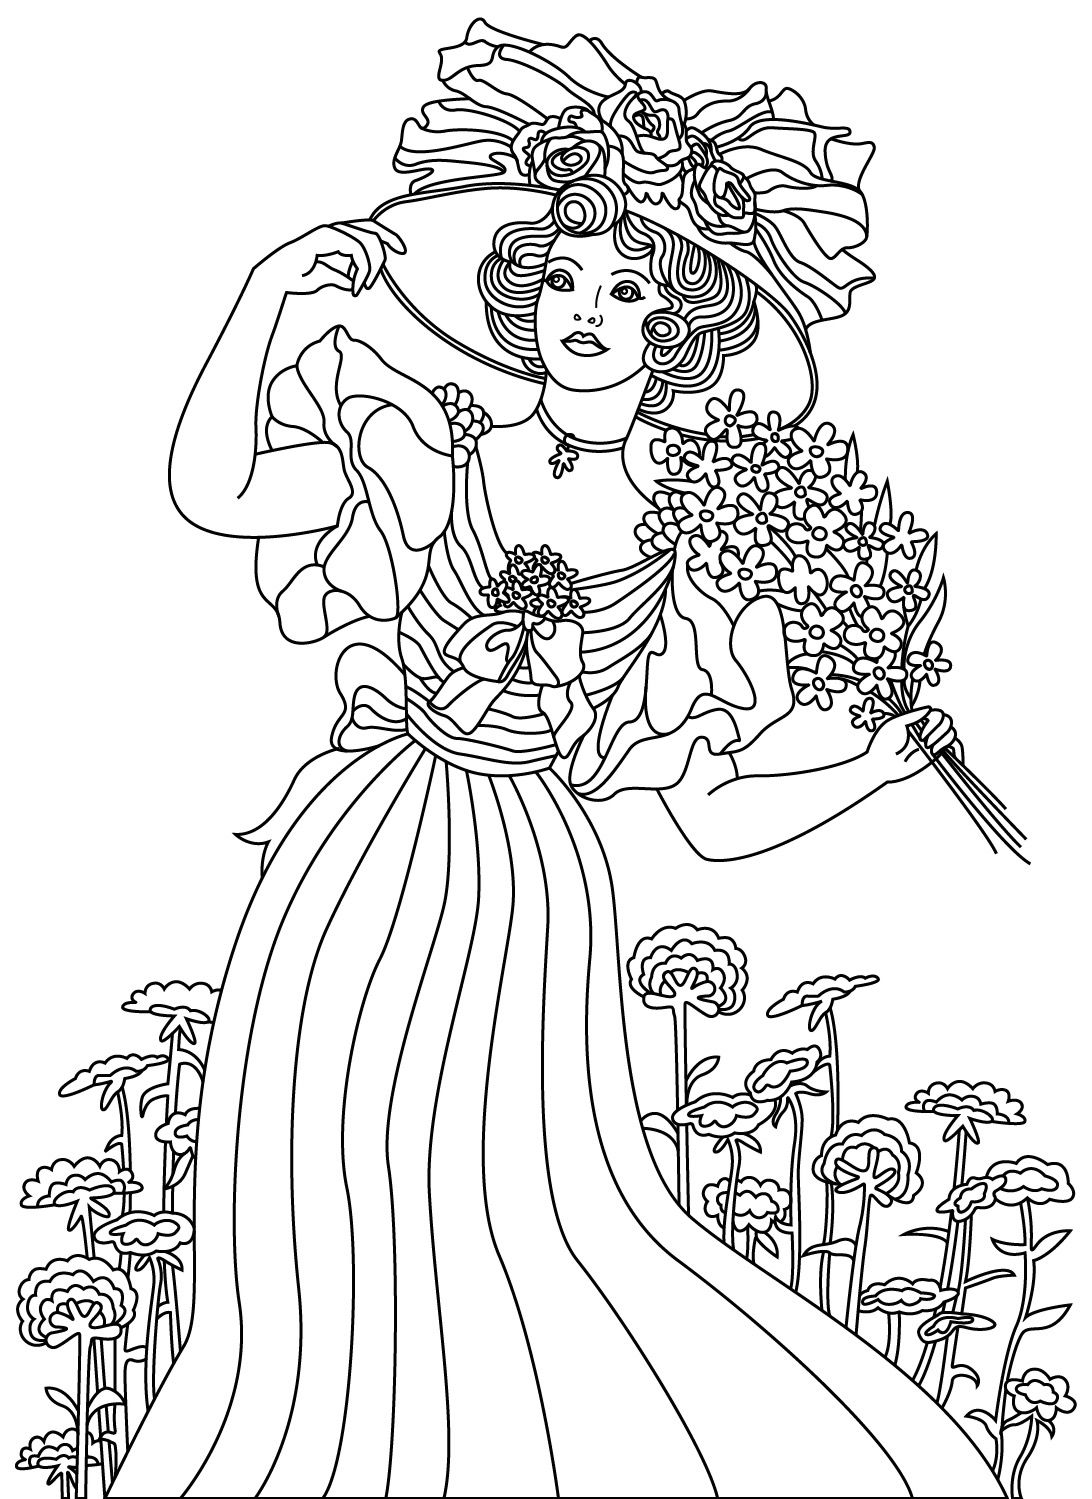 girl robot coloring pages steampunk helga by jollyjack steampunk coloring pages robot girl coloring